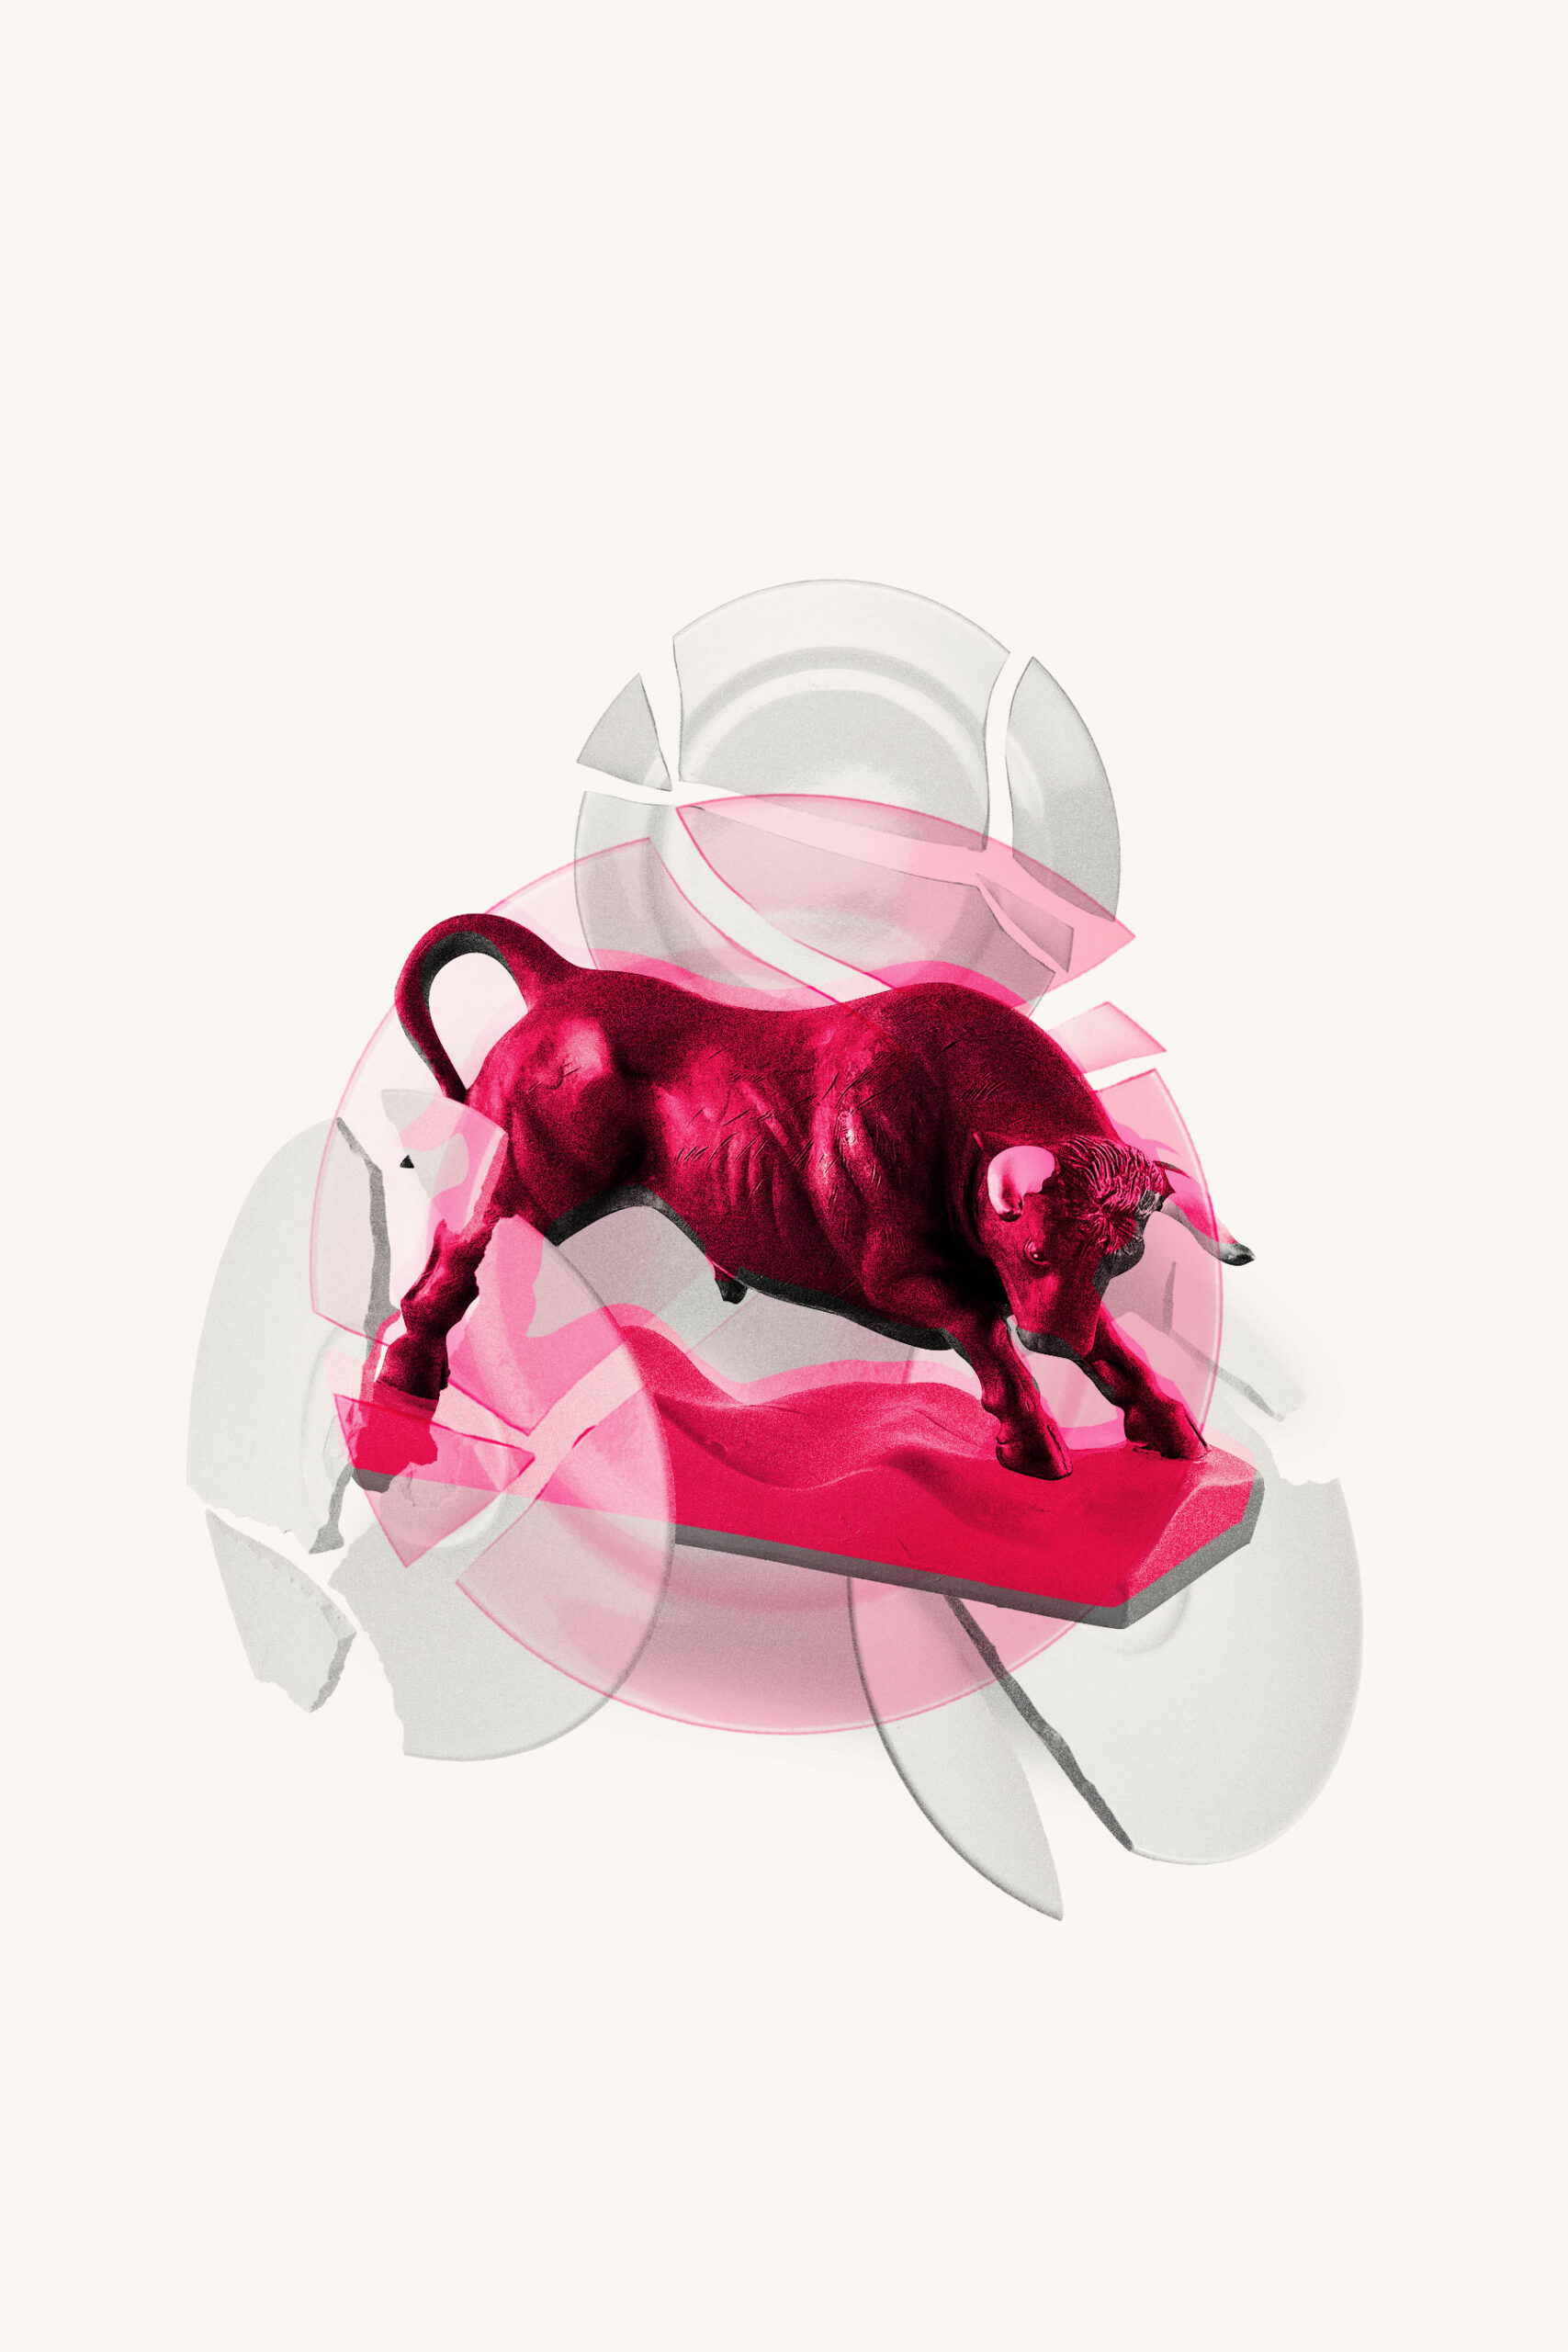 A Bull in a China Shop - Branding Lesson